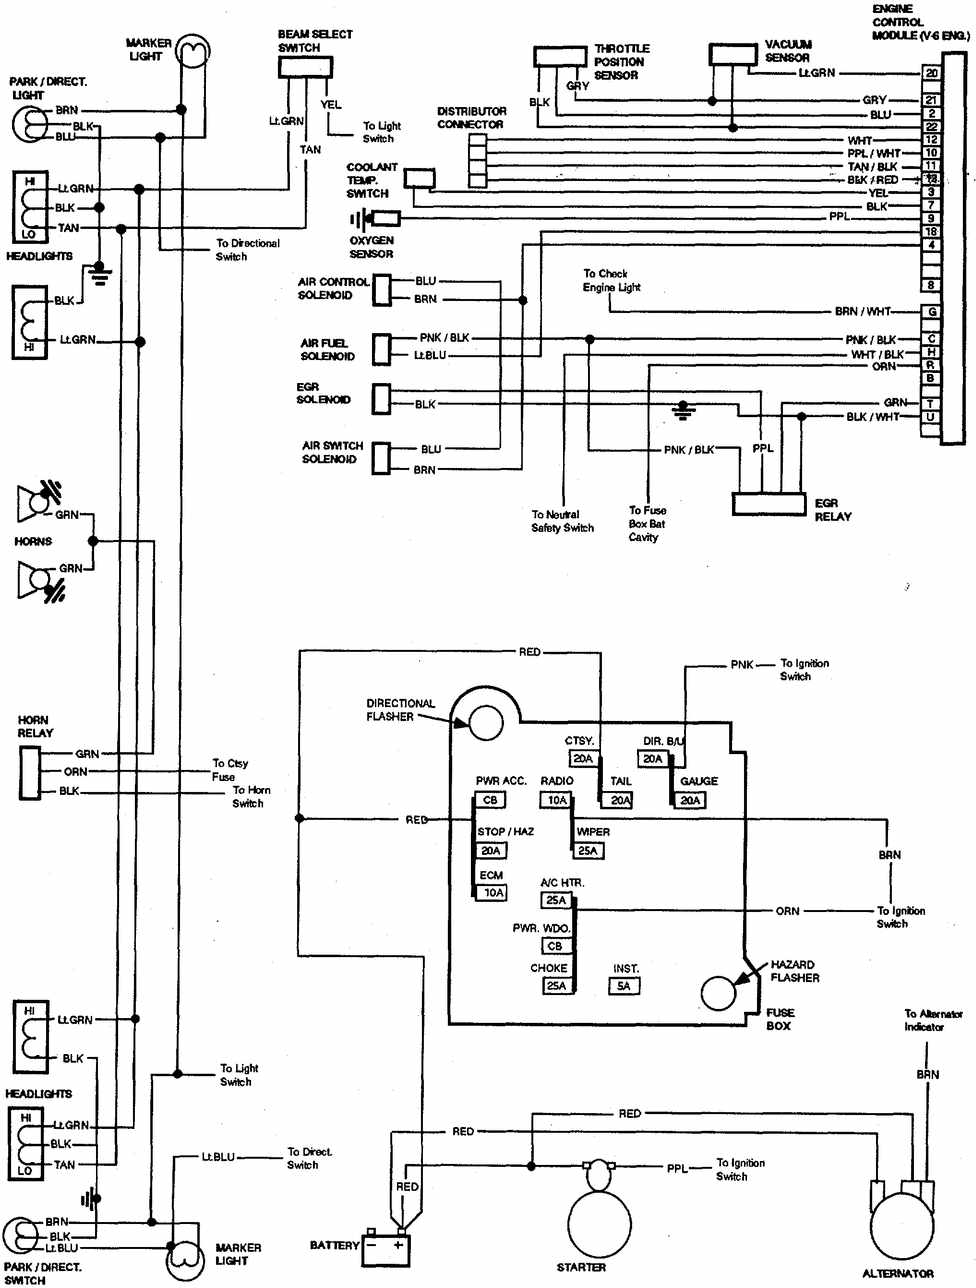 1987 chevy k20 wiring diagram